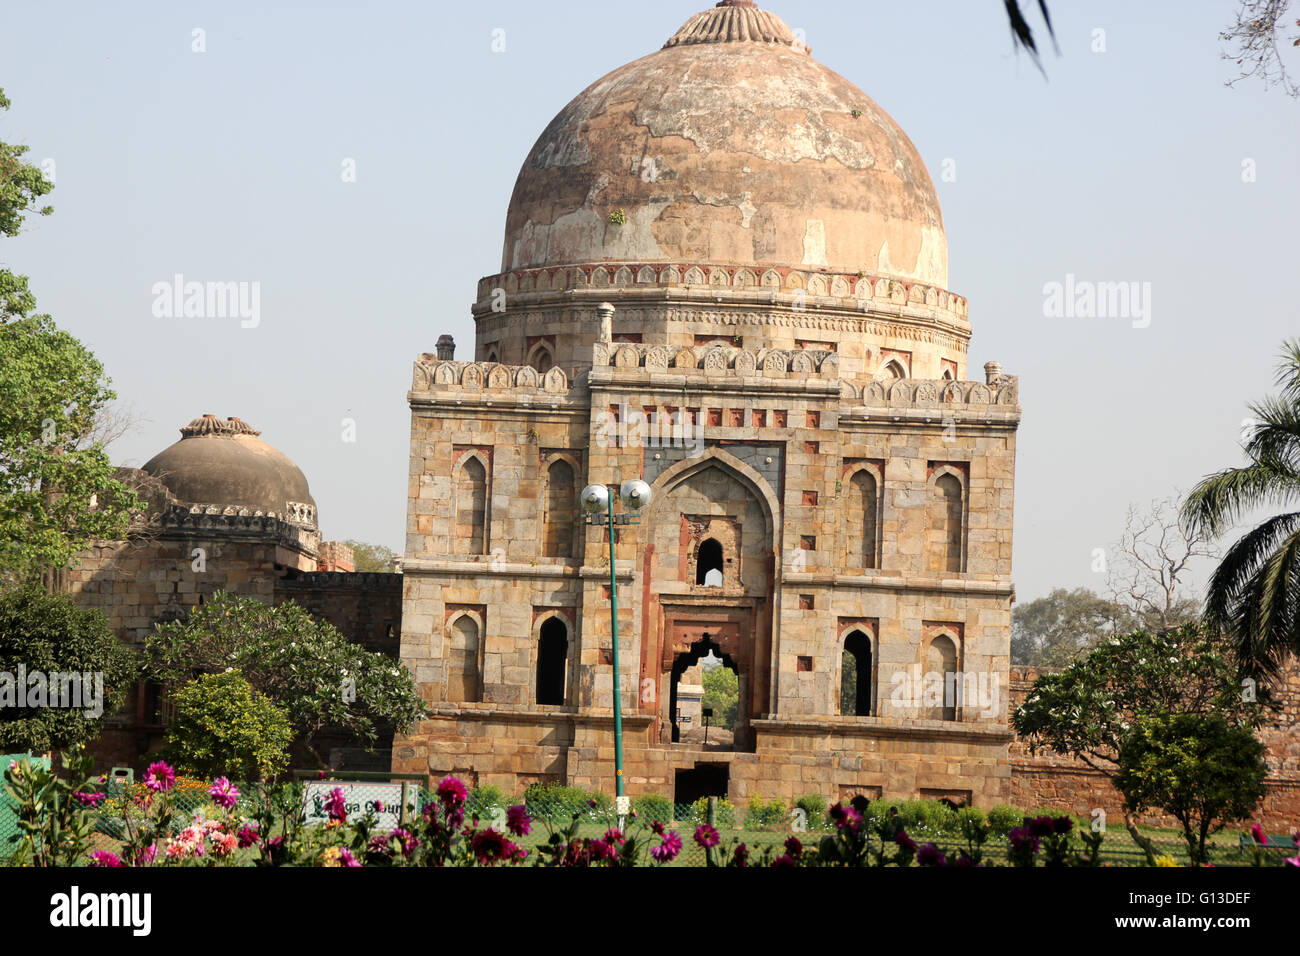 Bada Gumbad Mosque, Lodhi Gardens, Delhi, big dome shaped mosque constructed in 1494 during Lodhi dynasty - Stock Image